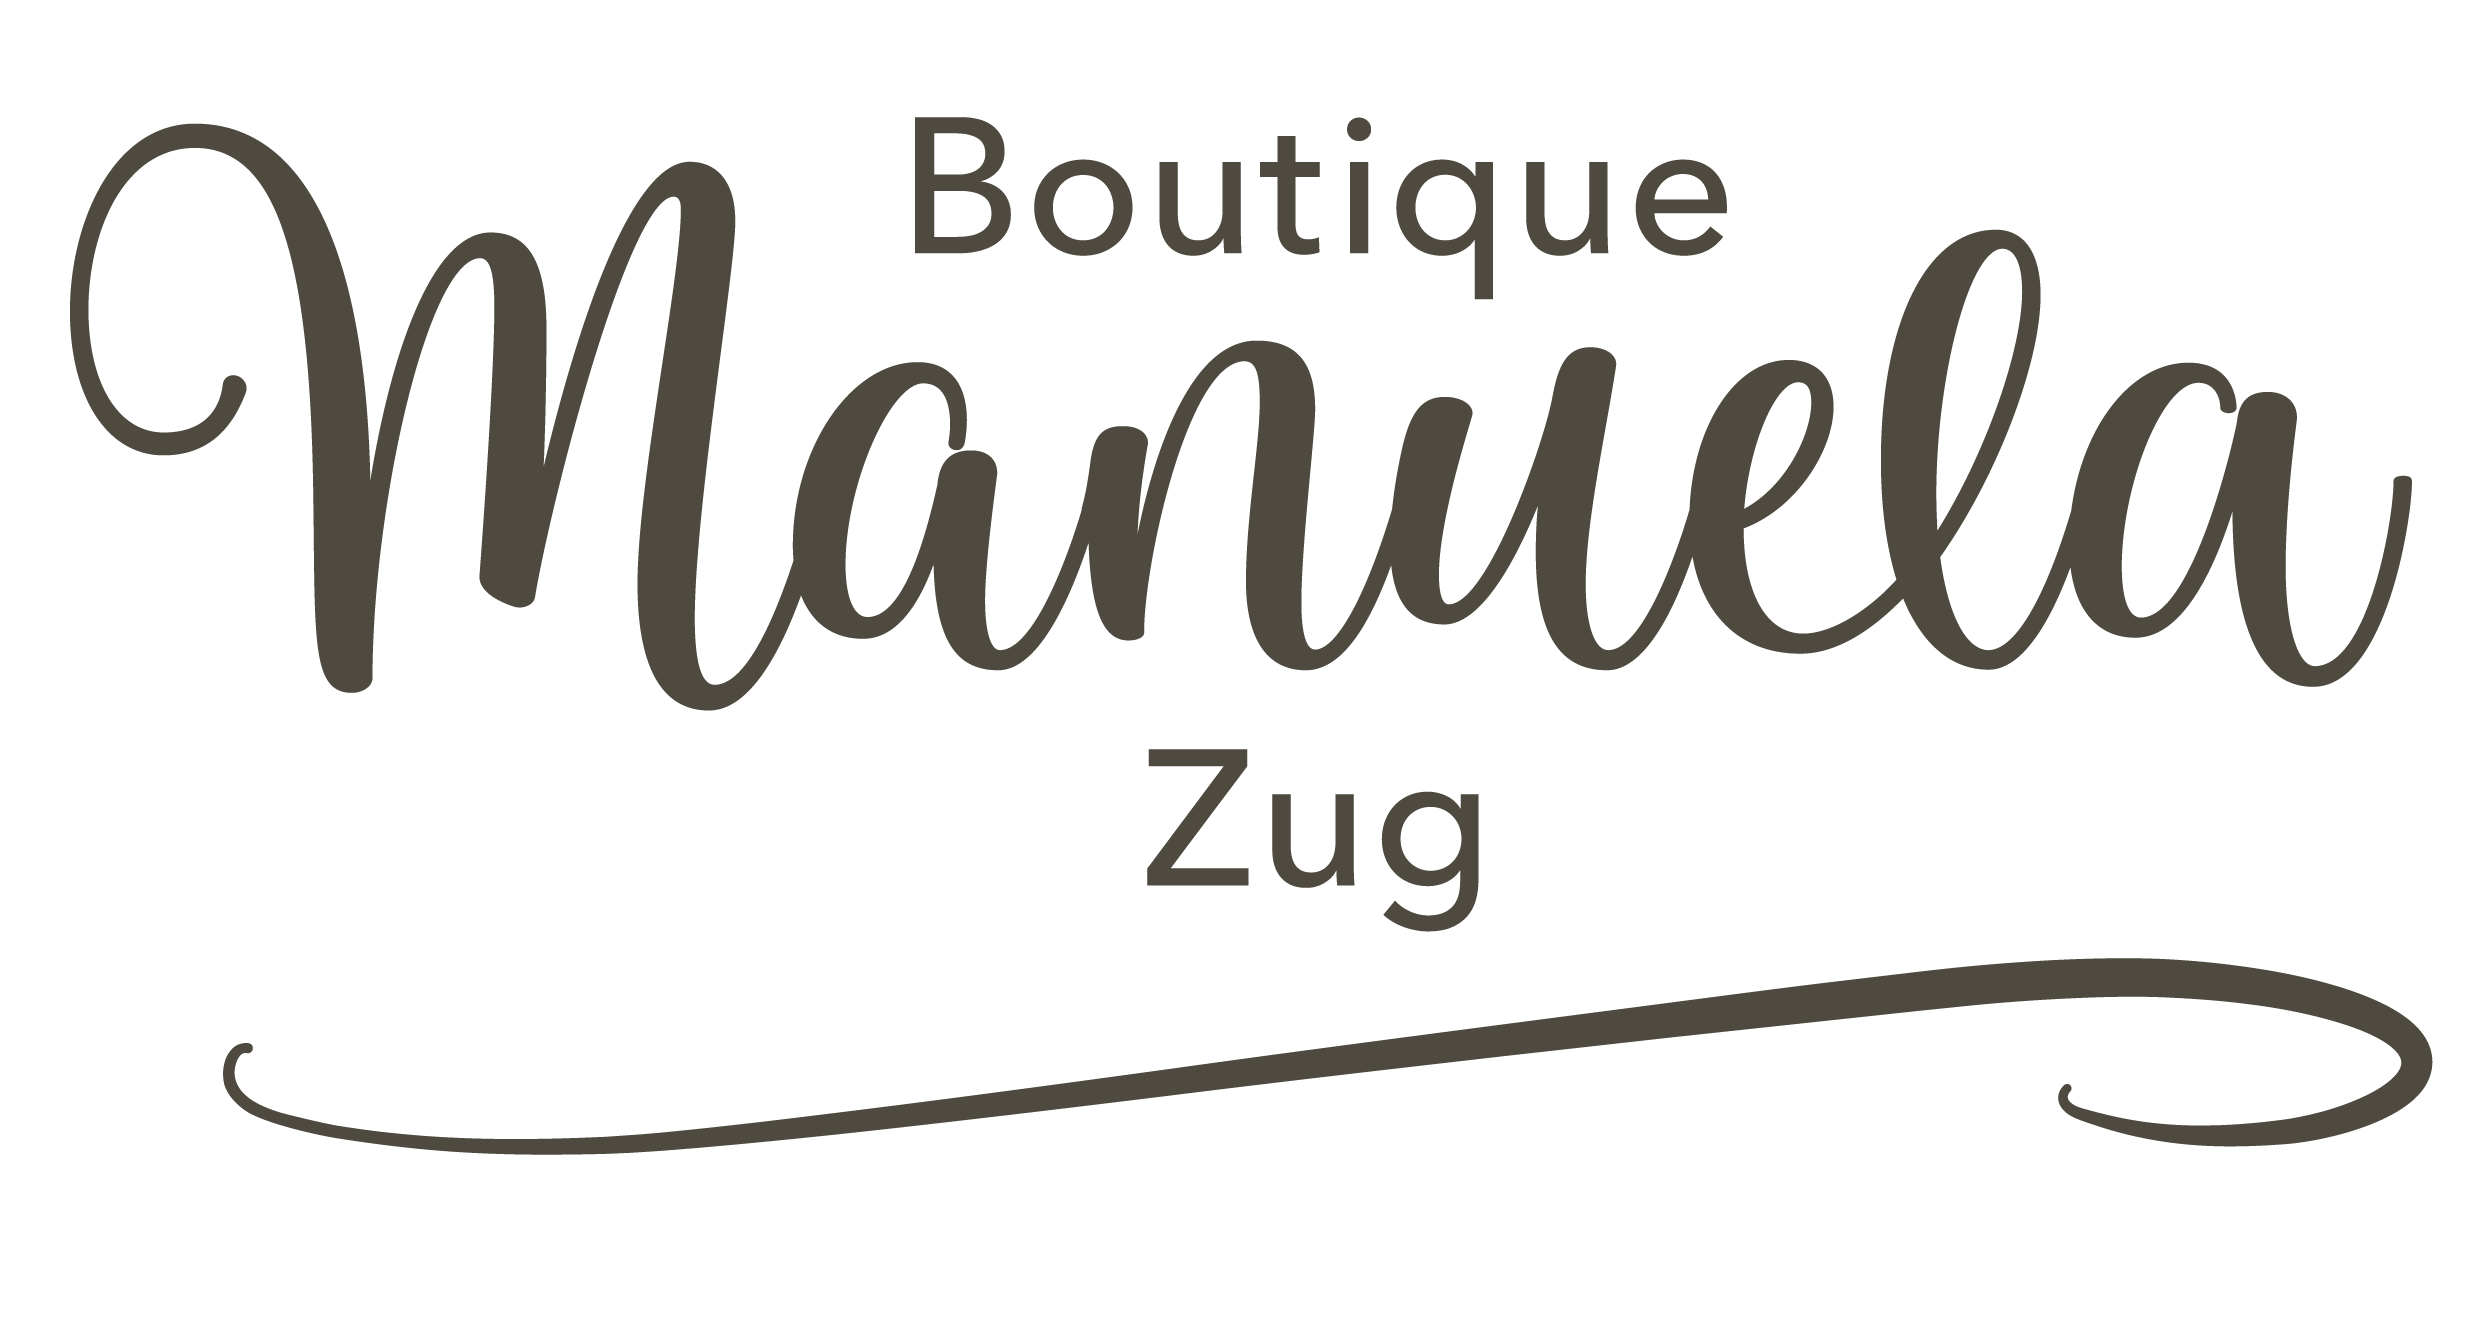 Boutique Manuela Zug